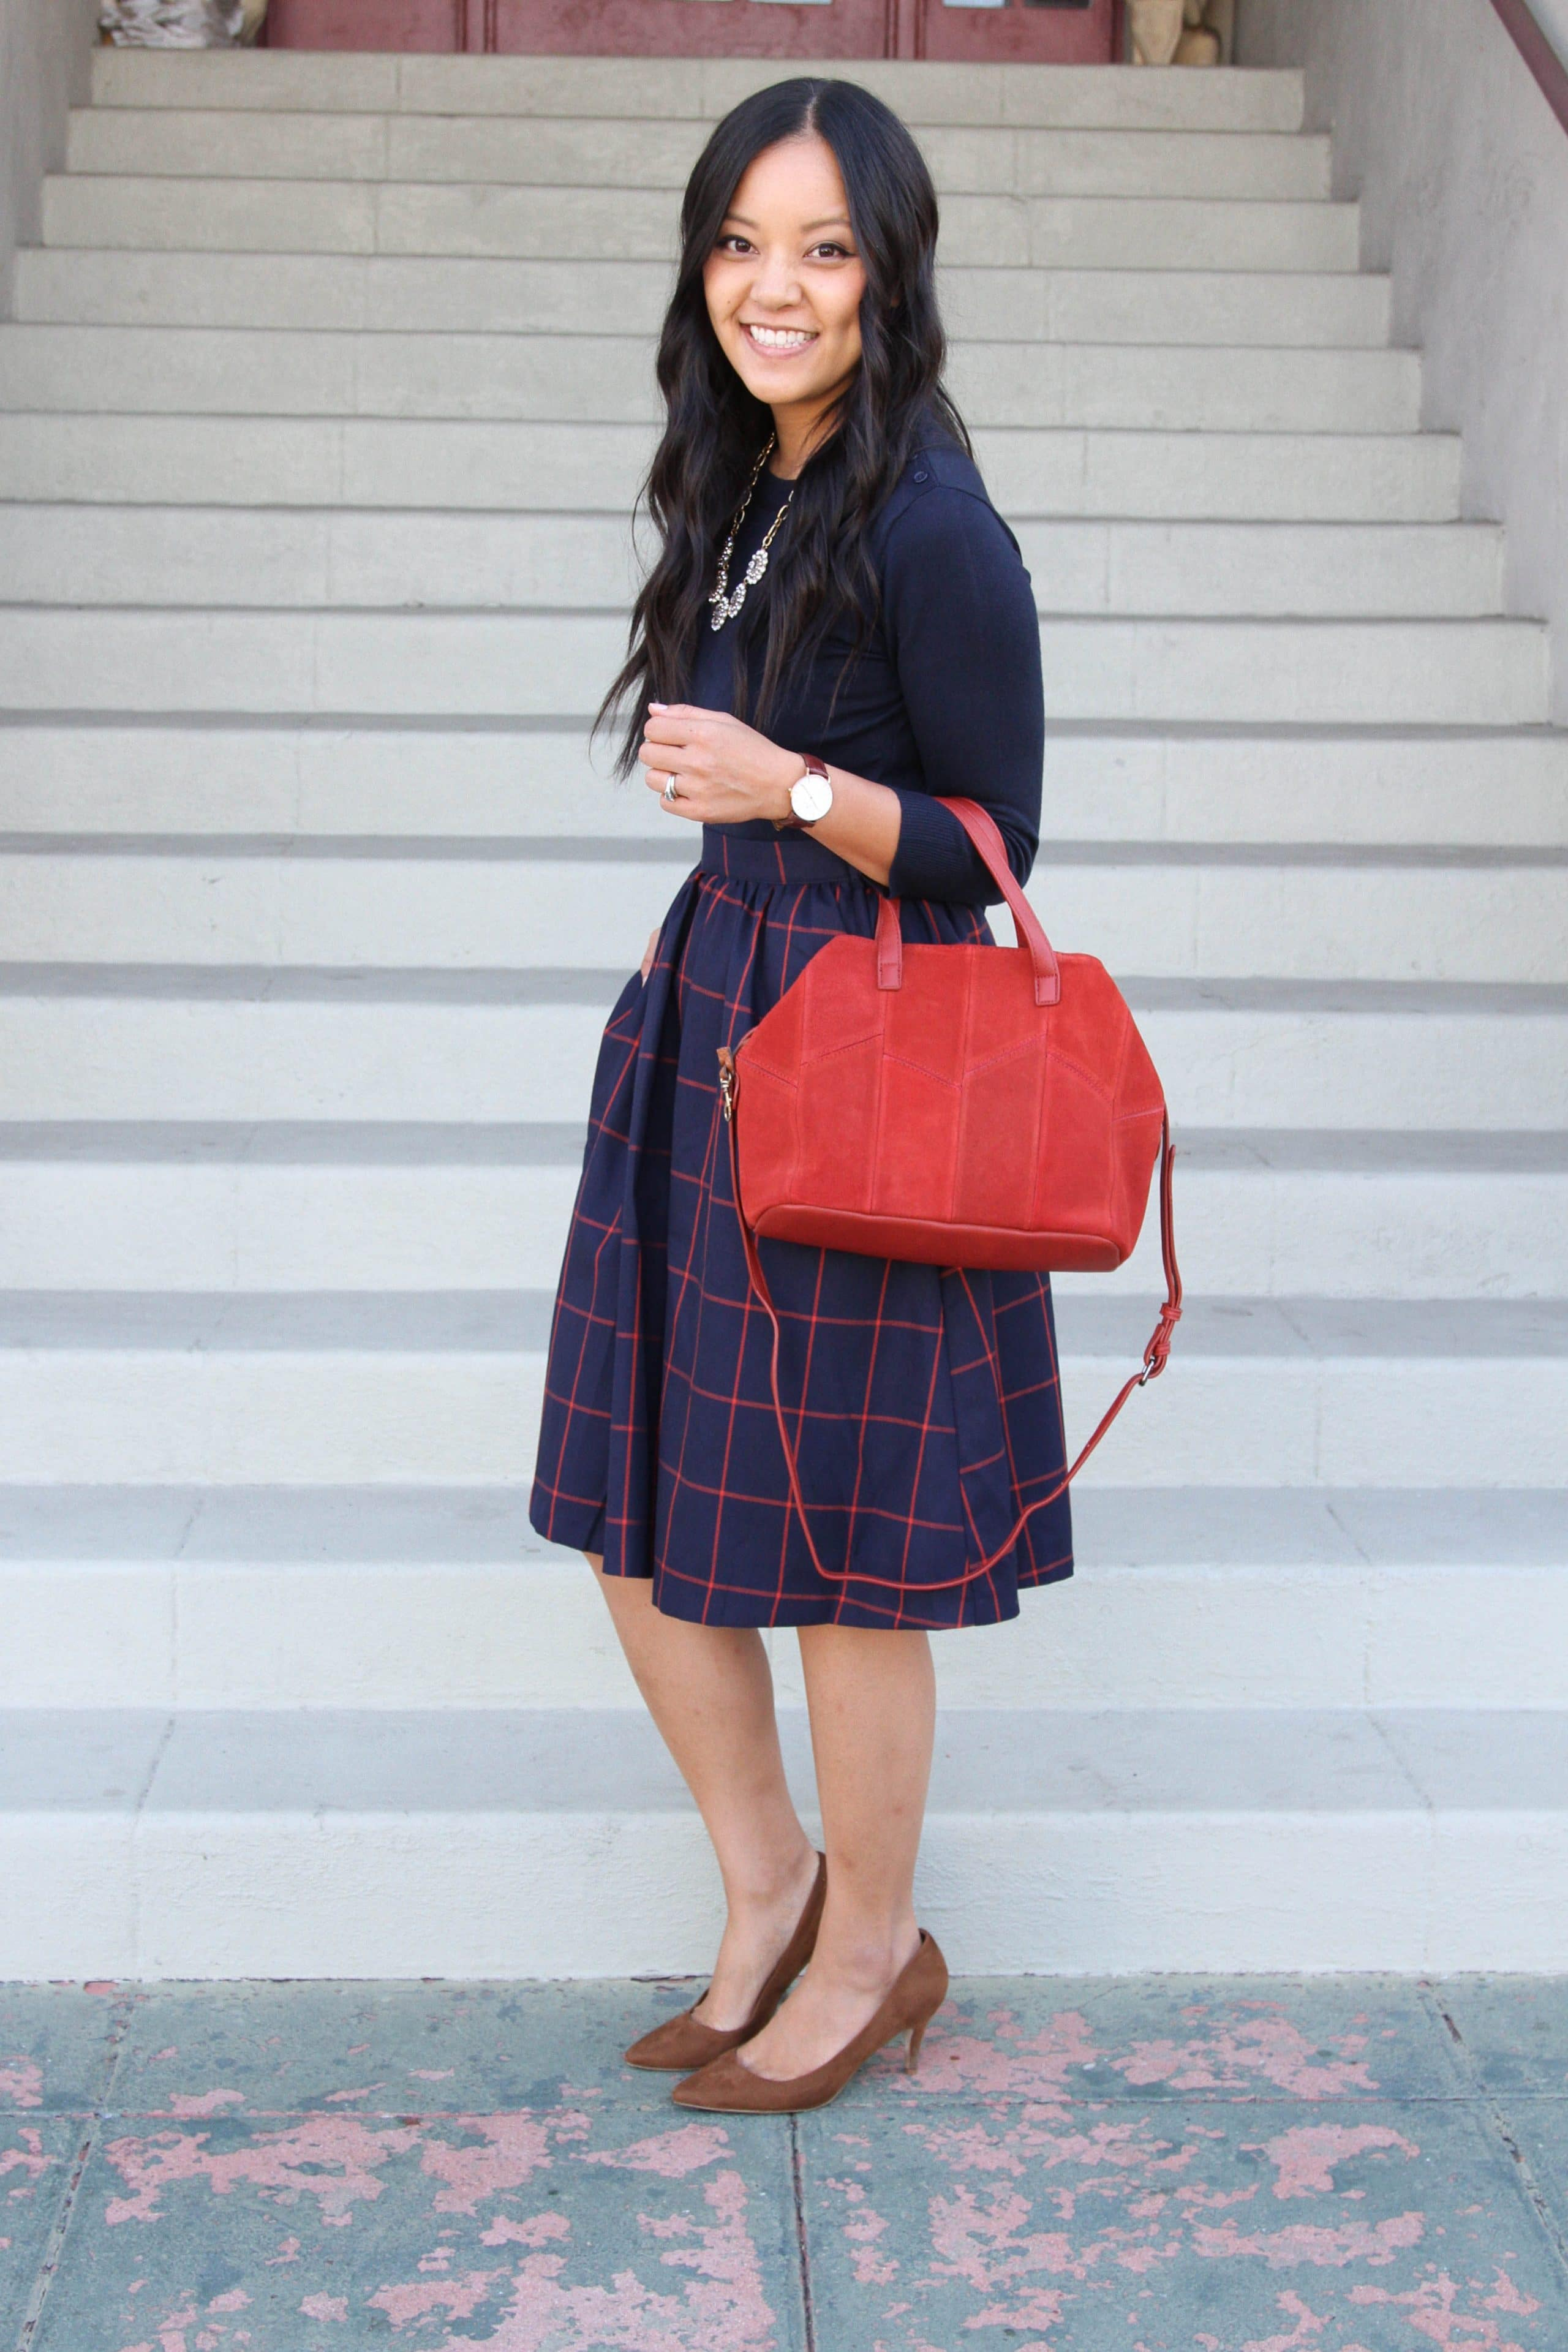 Red Bag + Blue and Red Skirt + Navy Sweater + Pumps + Statement Necklace